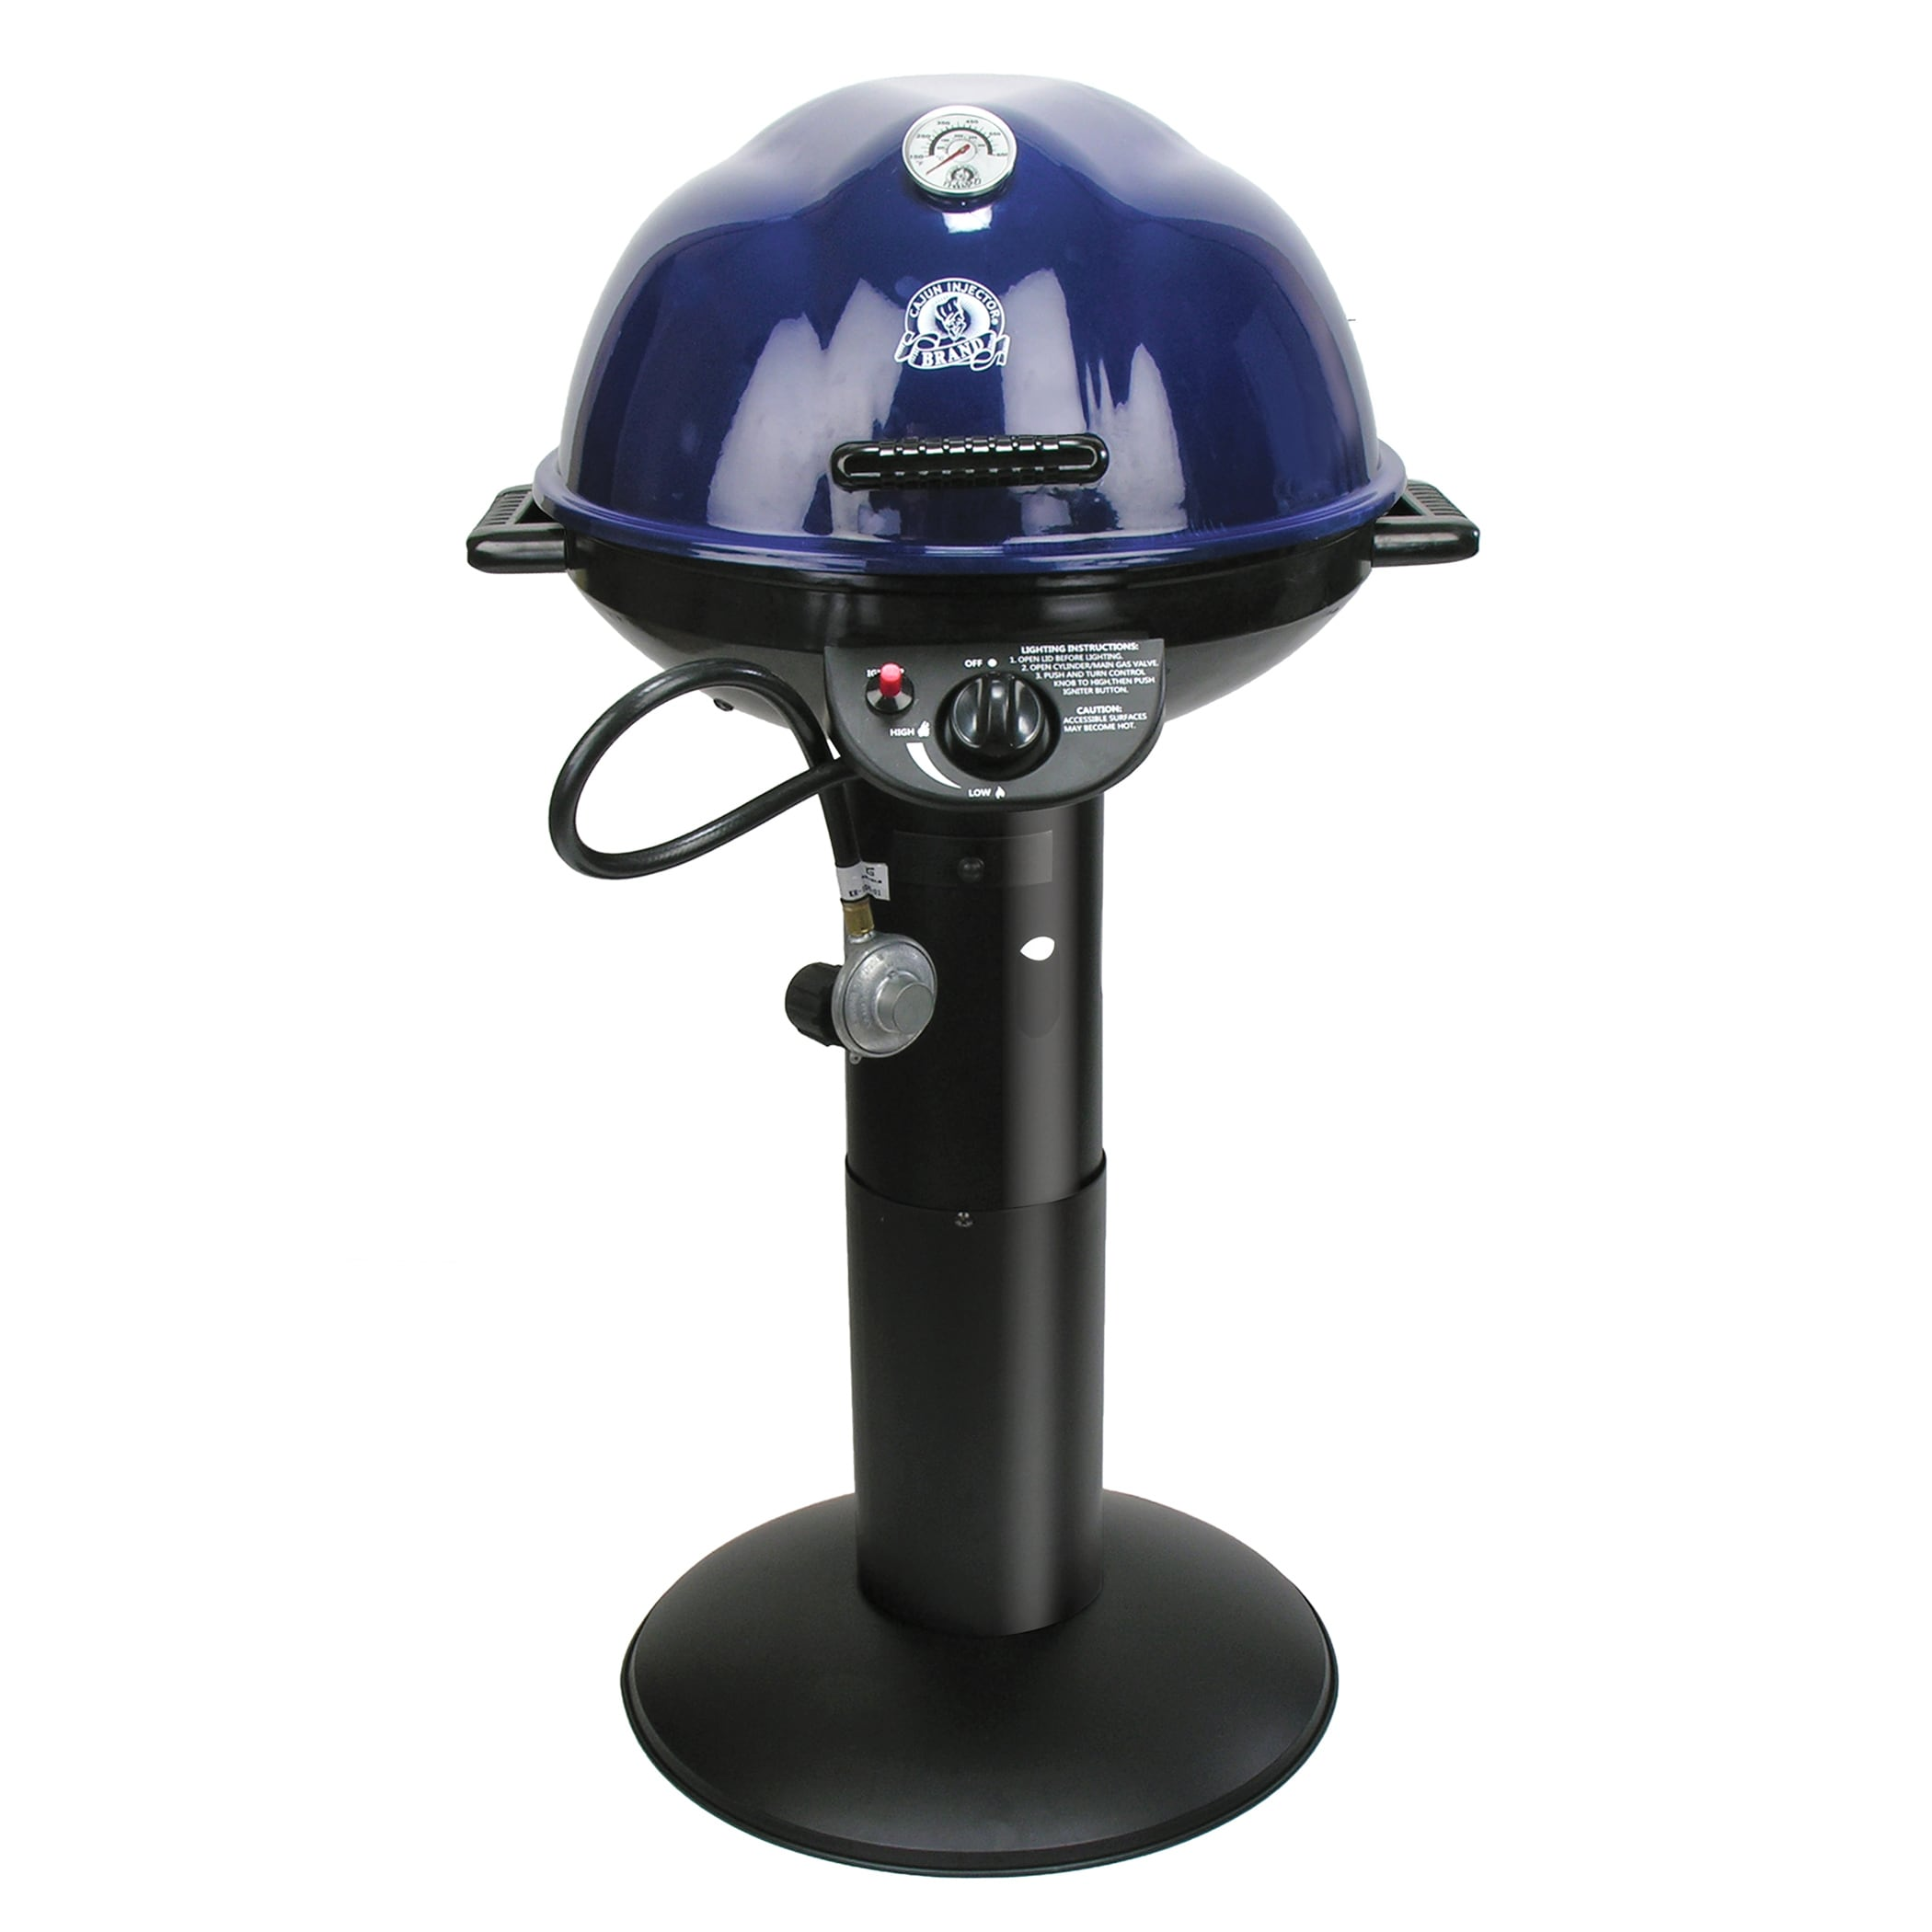 Propane Pedestal Grill Free Shipping Today Overstock